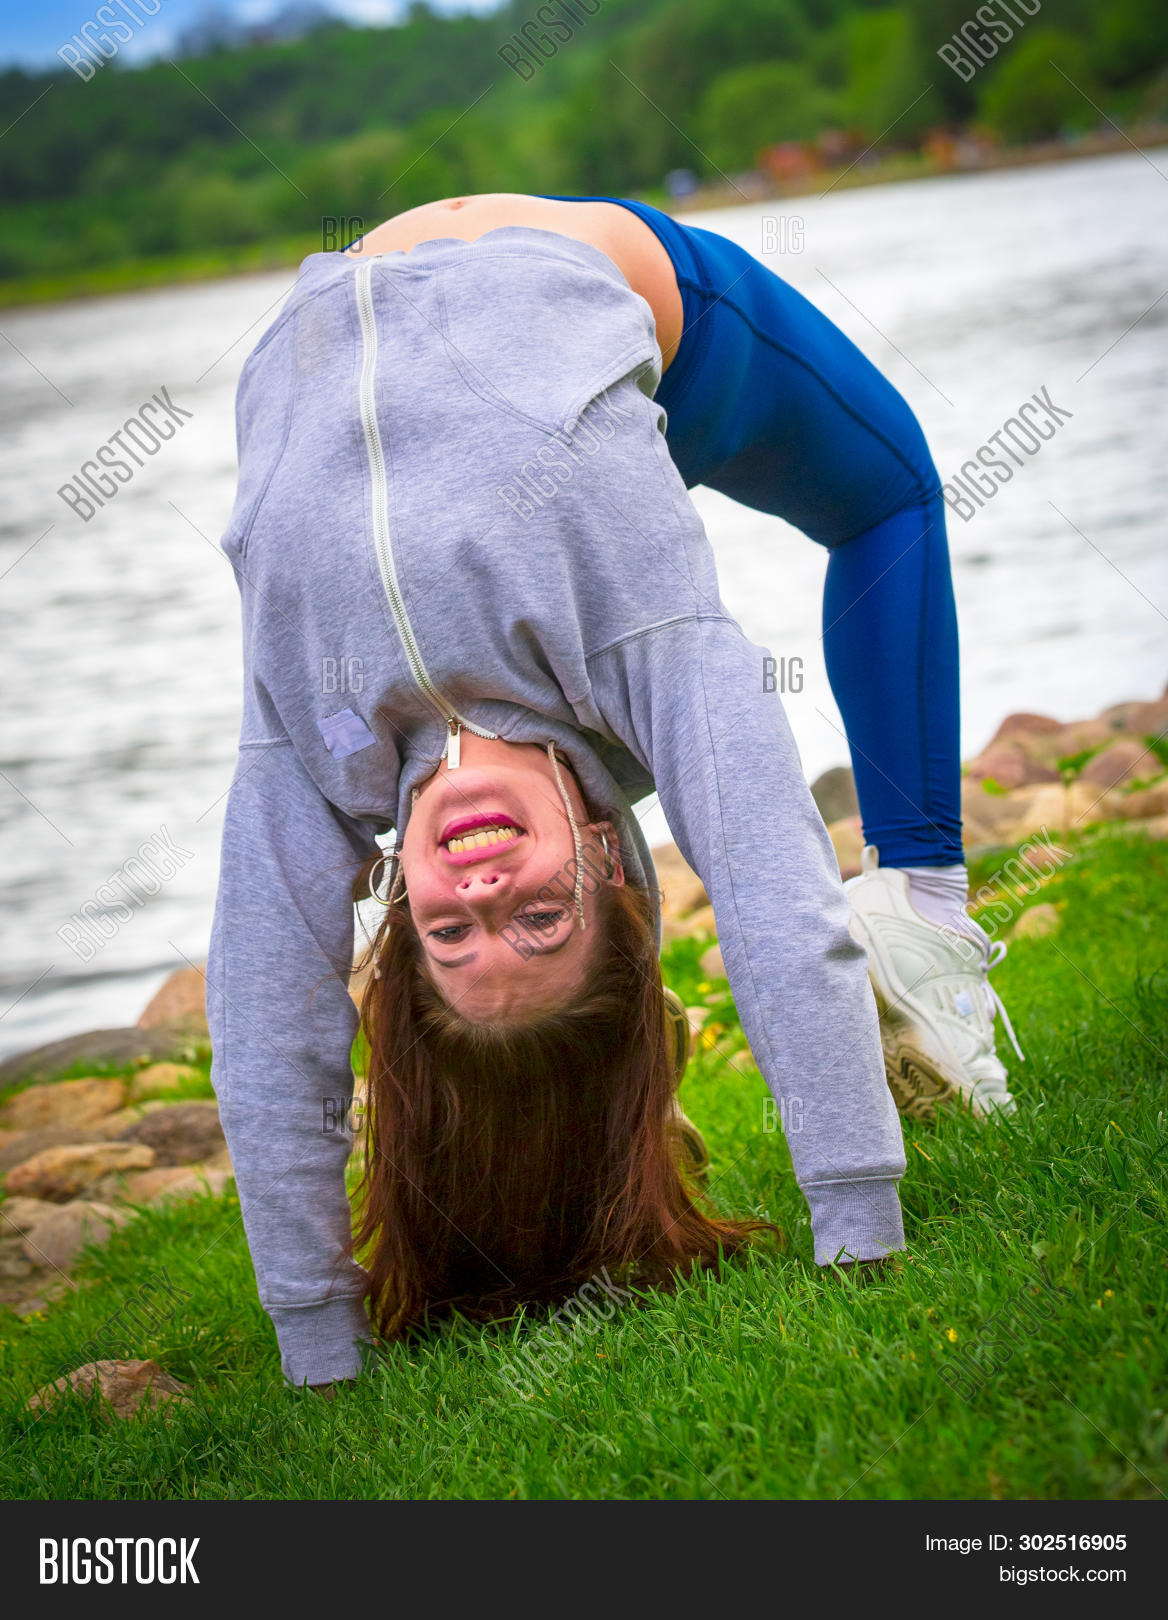 Young Girl Goes In For Sports In Nature. Healthy Lifestyle.flaxible Child Doing Joga Poses Bridge St